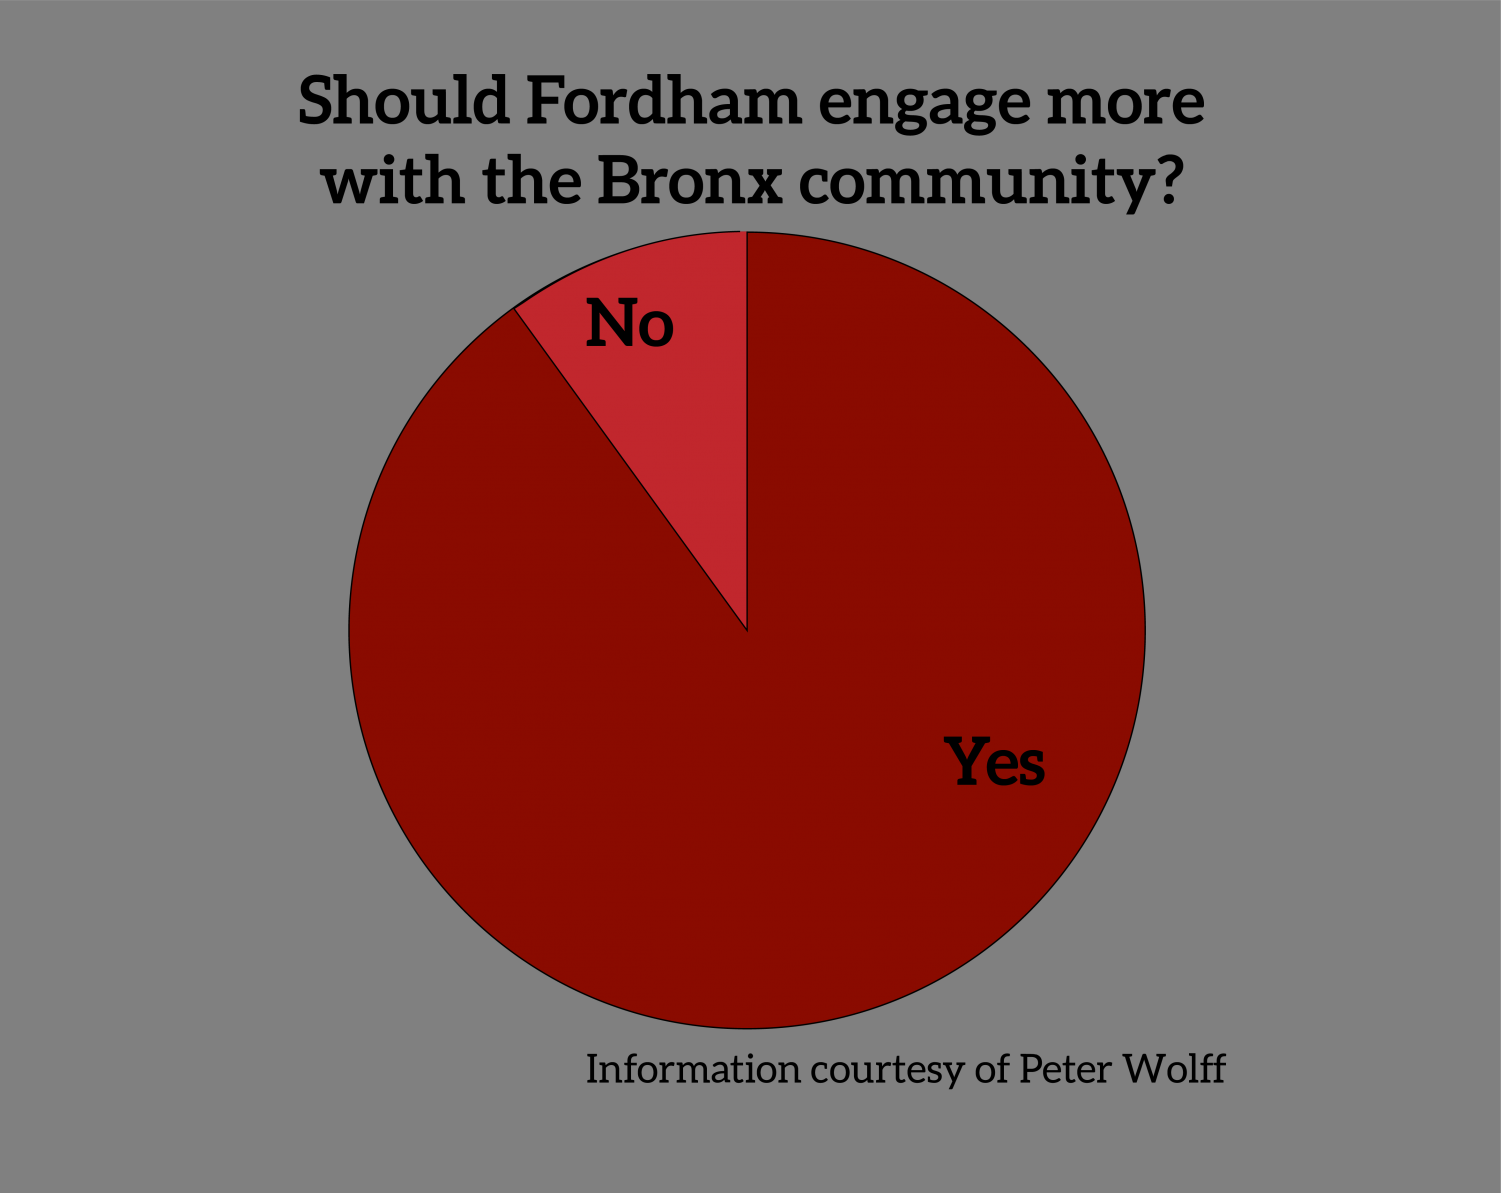 """for an article about anti-racist education, a pie chart with responses to the question """"Should Fordham engage more with the Bronx community?"""" a great majority said yes"""